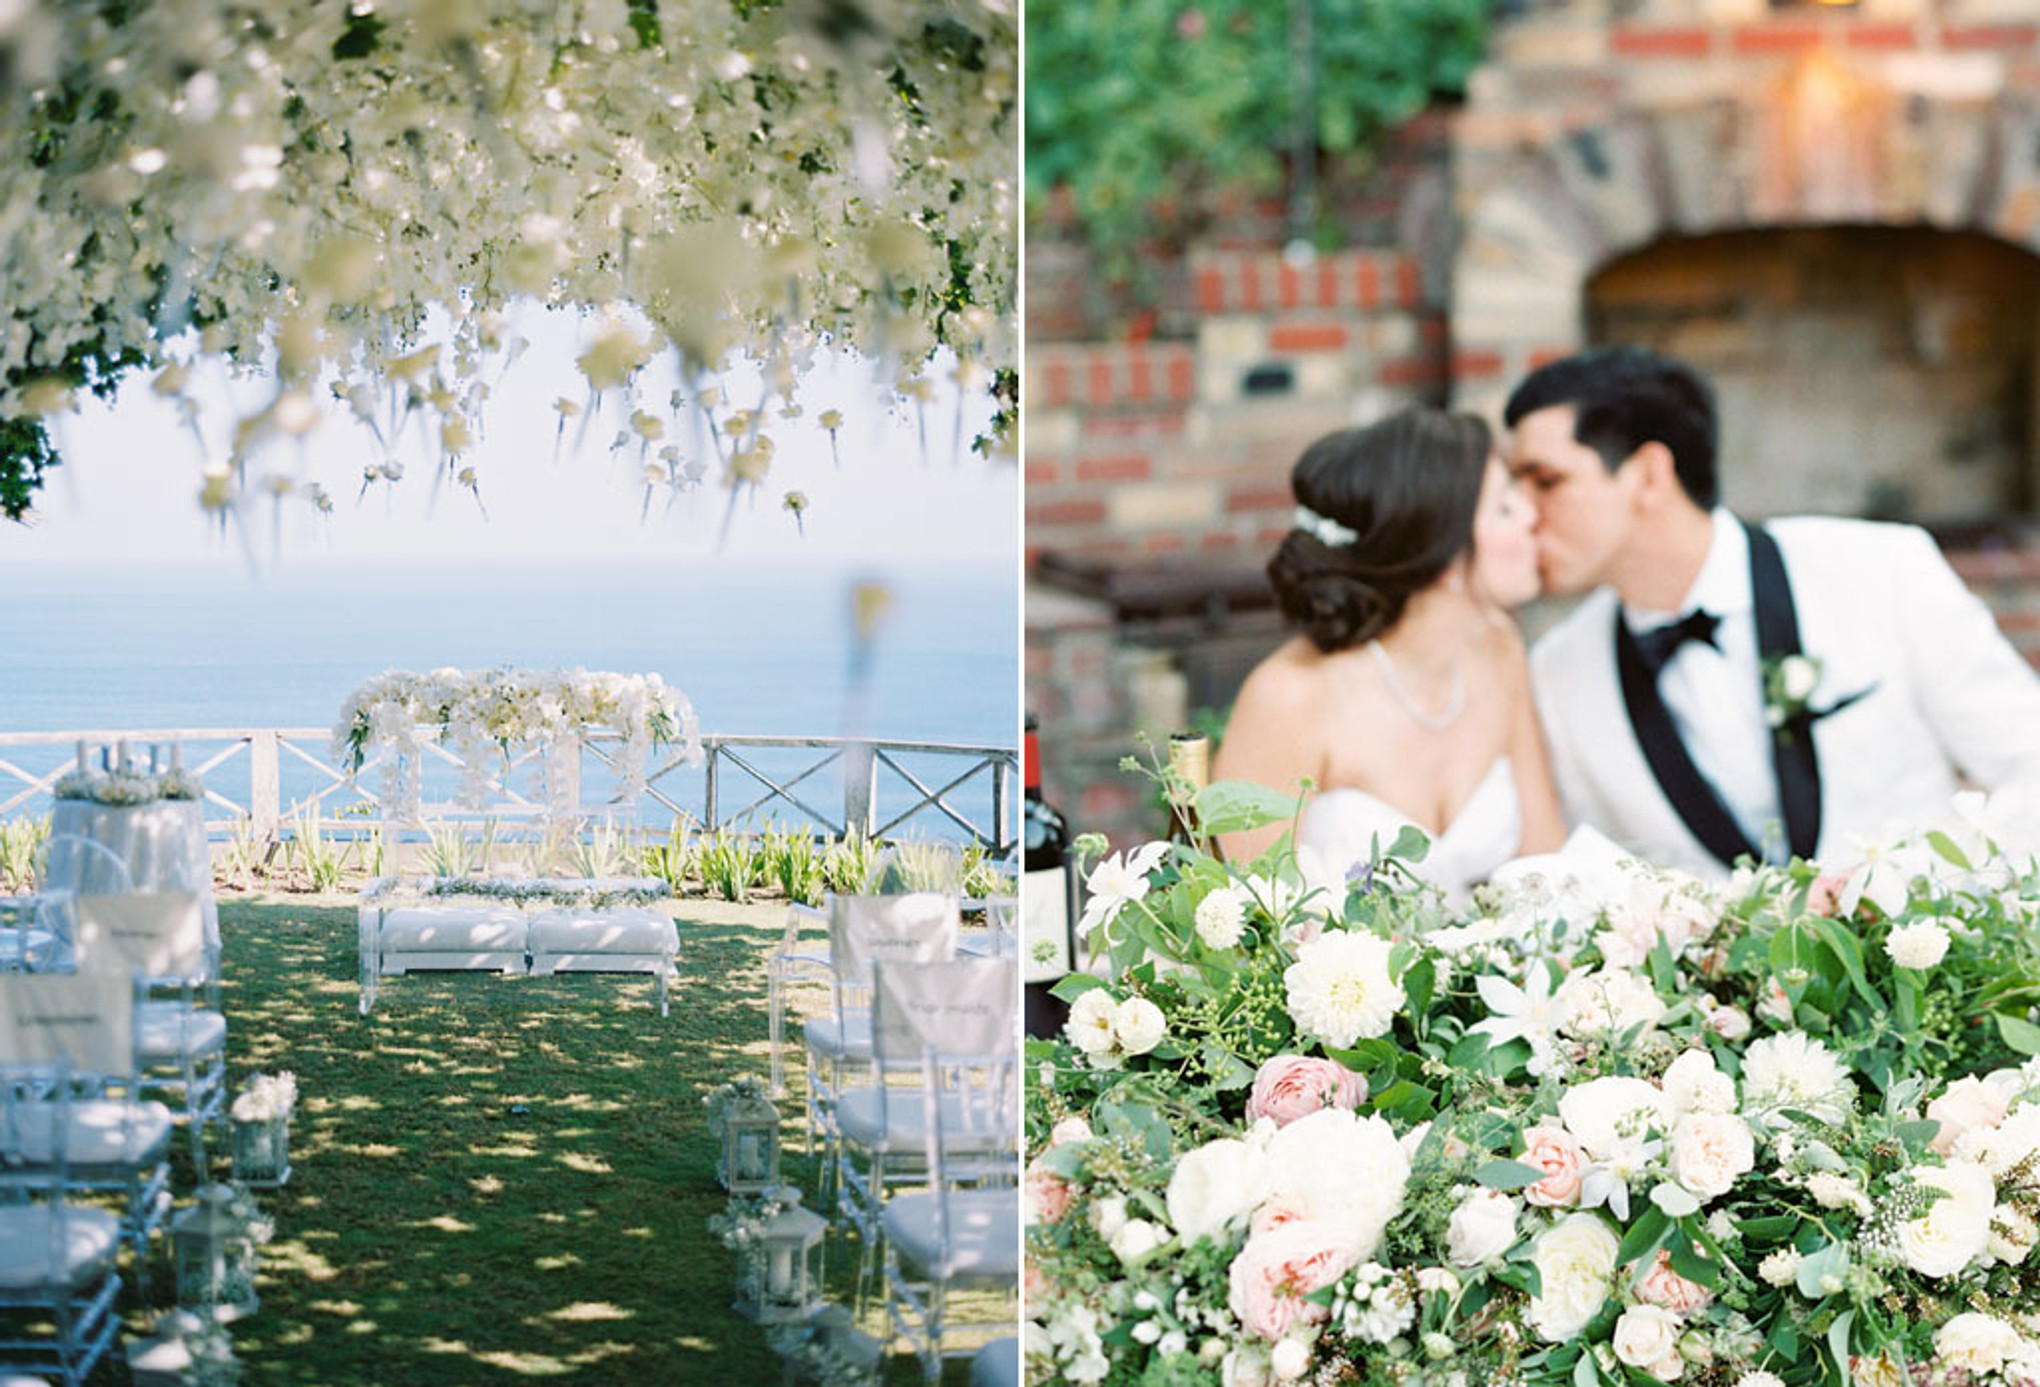 The Perfect Wedding.A Guide To Choosing The Perfect Wedding Theme Bridestory Blog